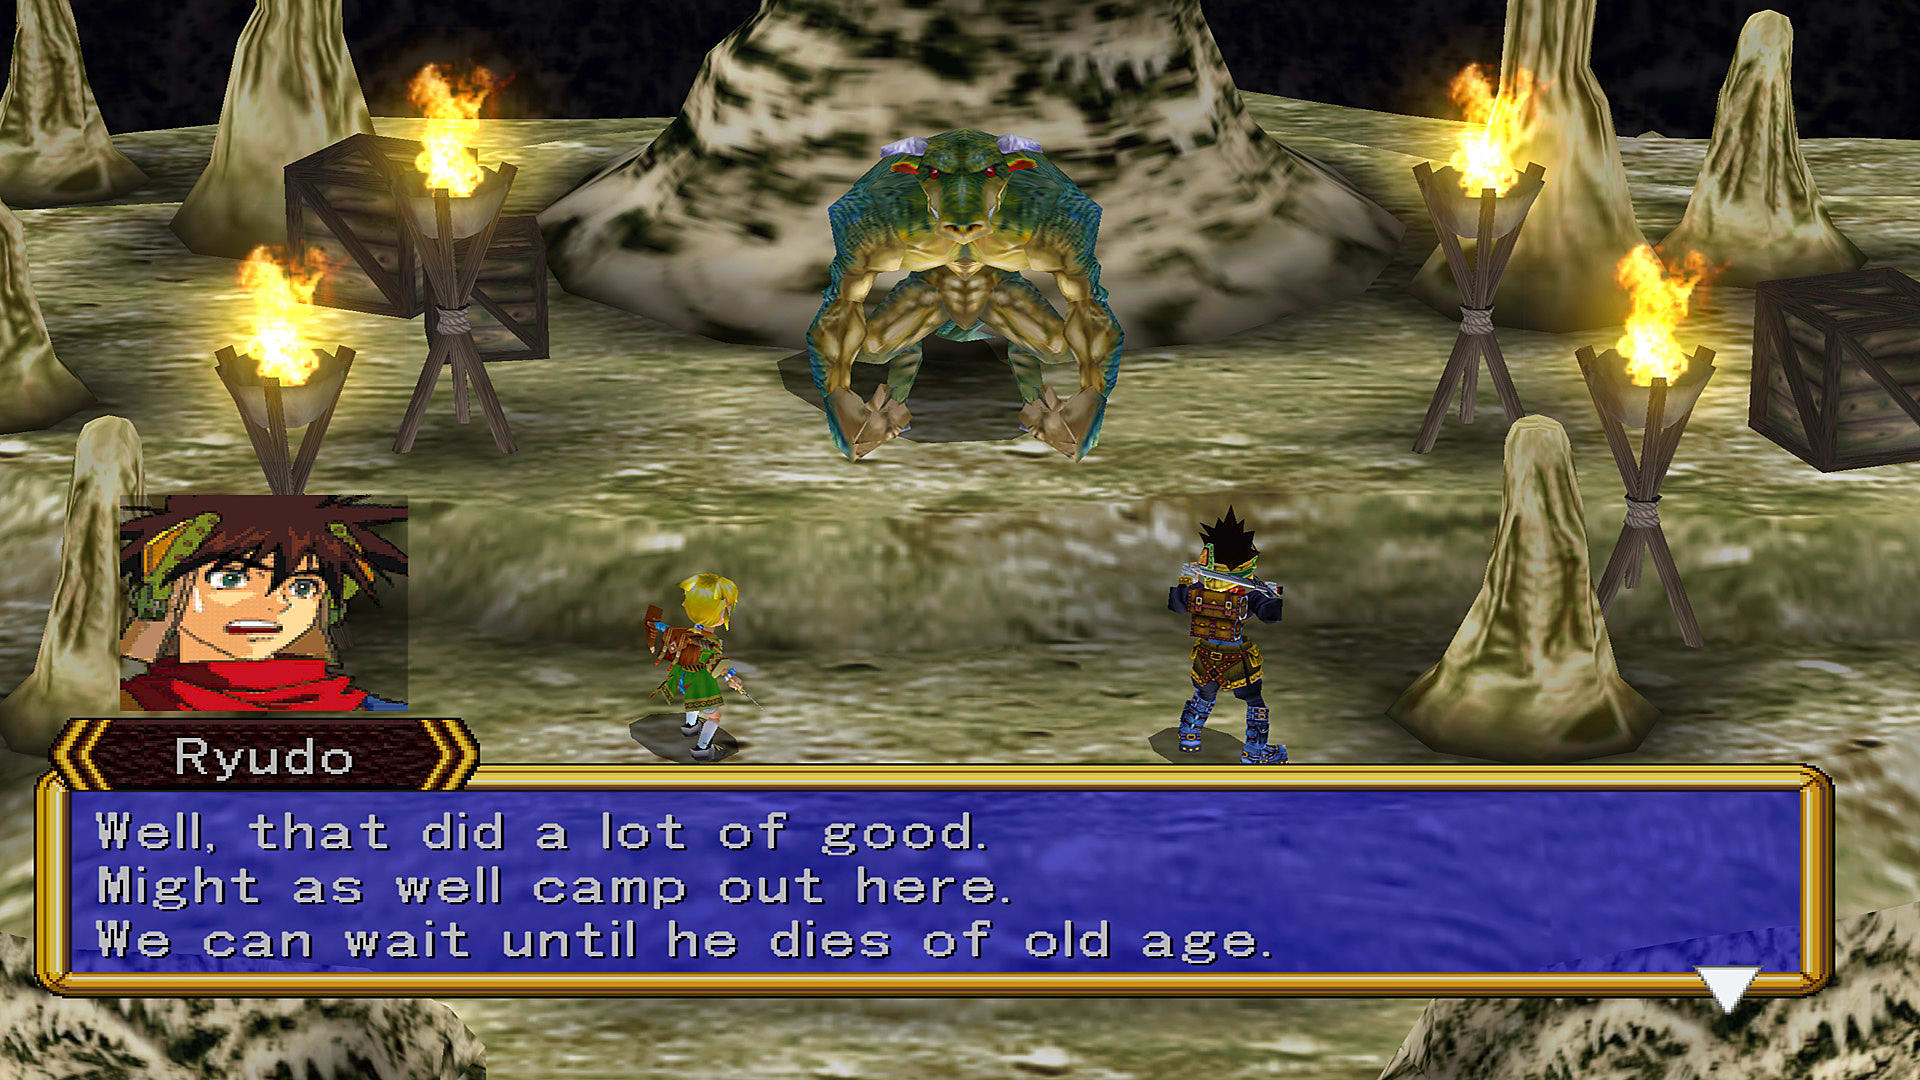 Grandia HD Collection and Remaster Finally Coming Soon to Switch 1920x1080